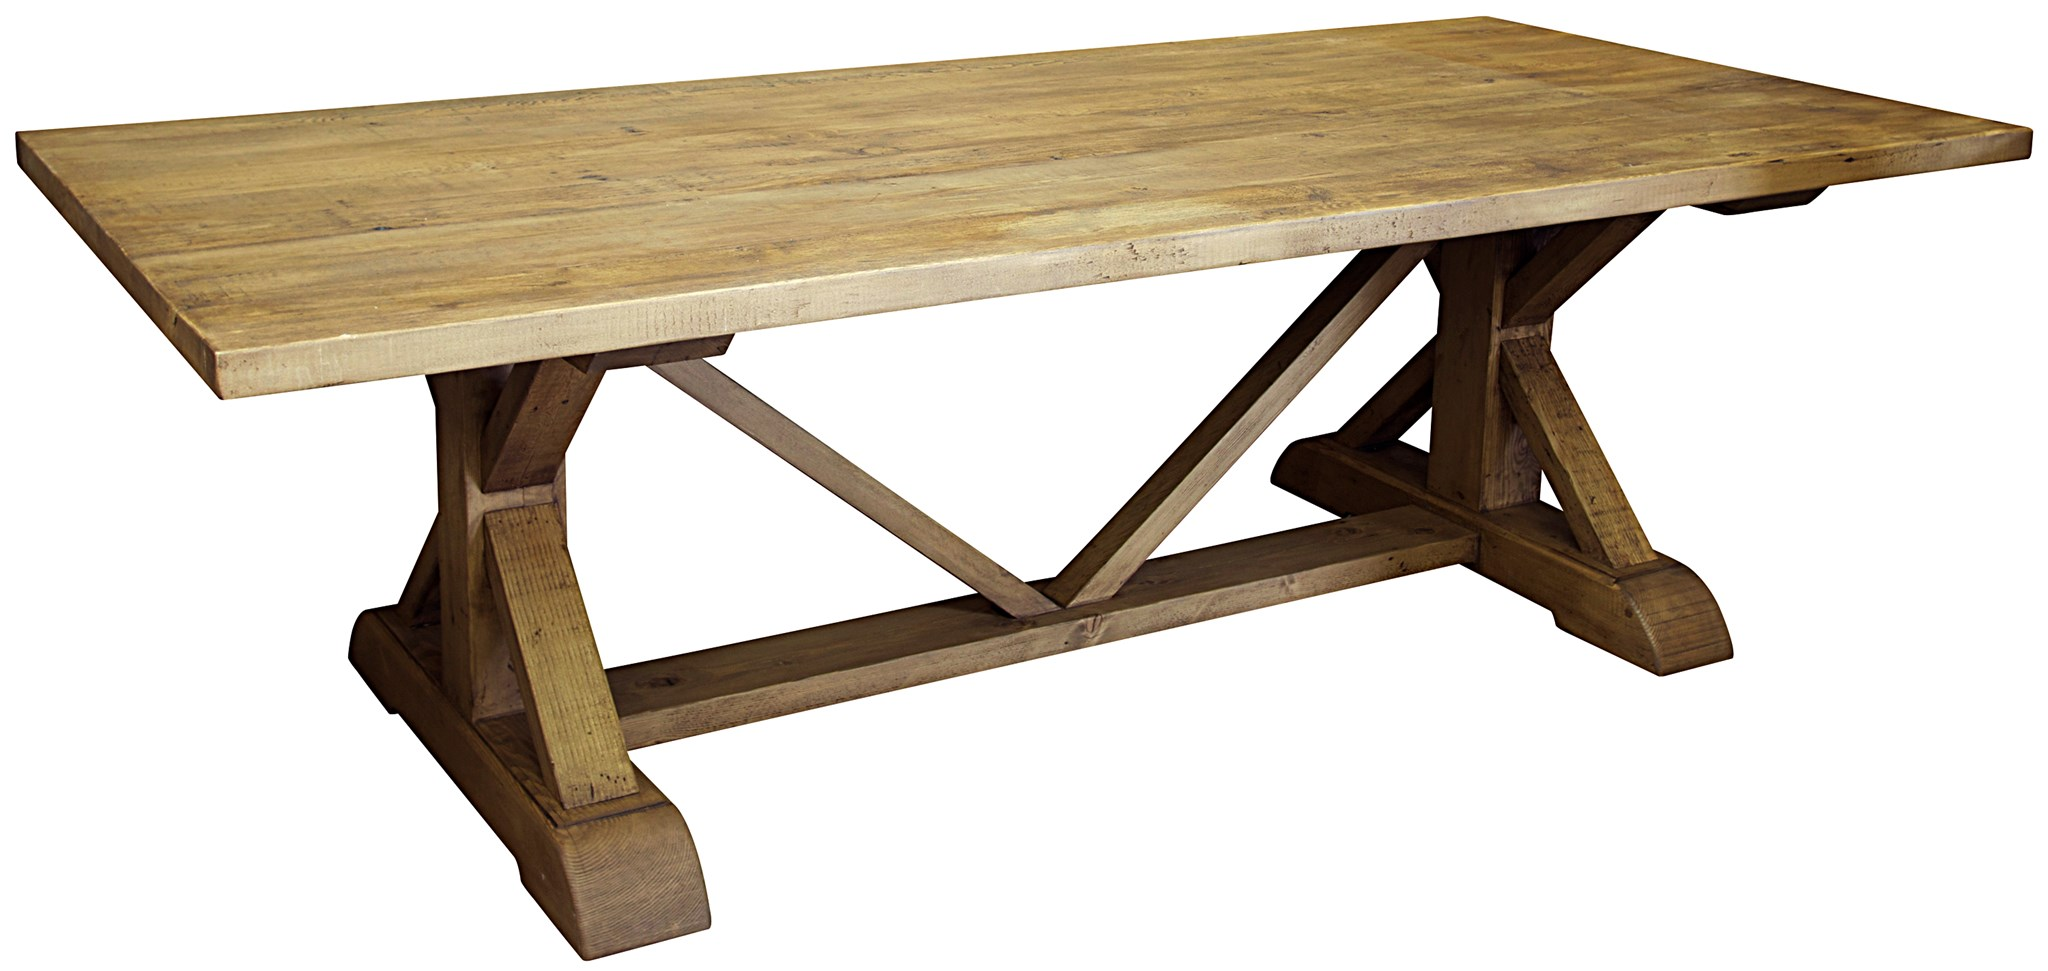 CFC - Cheap reclaimed wood dining table